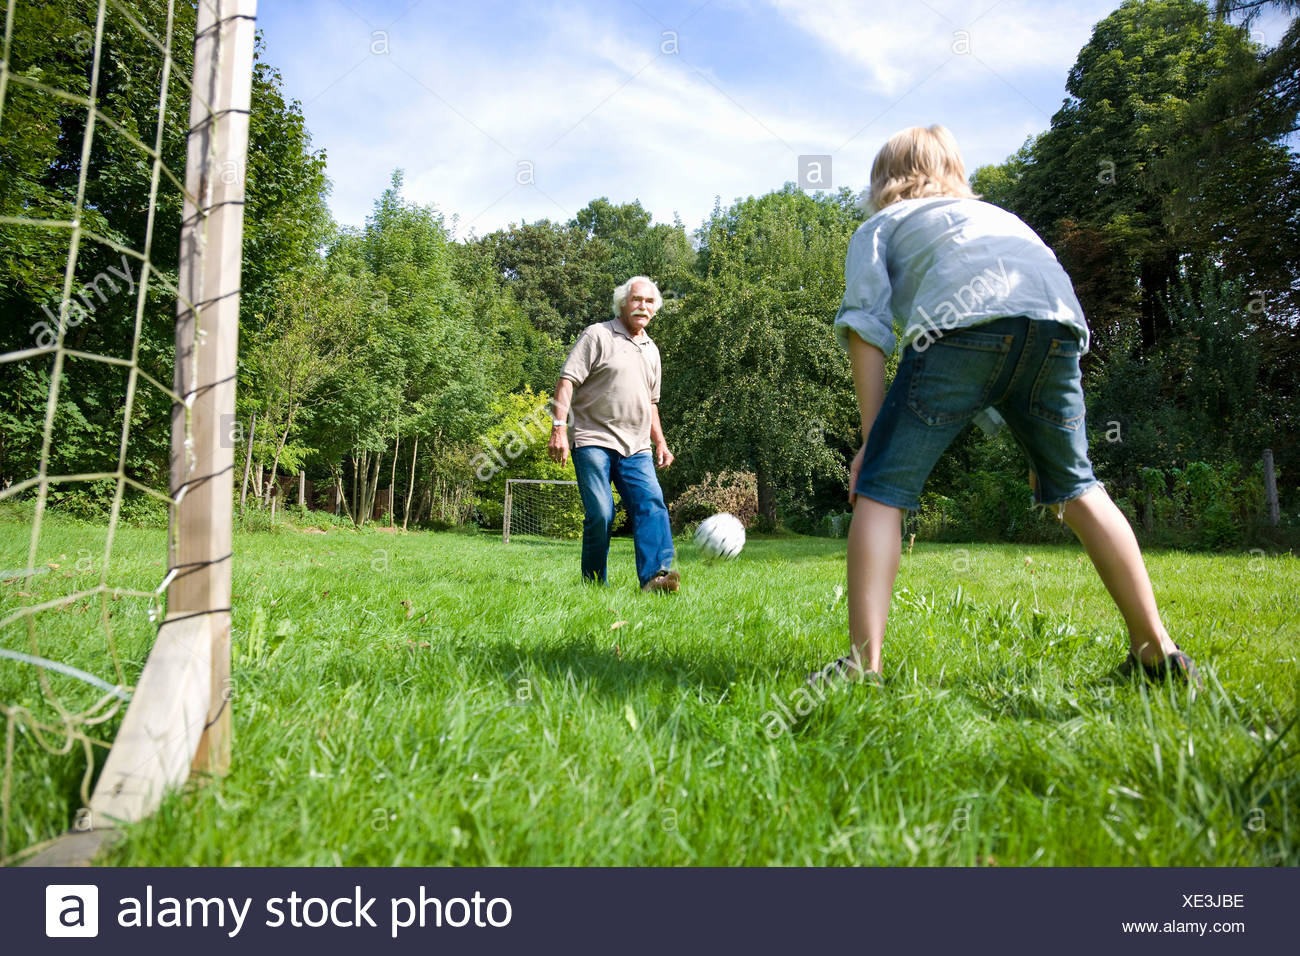 Grandfather tries to score a goal - Stock Image